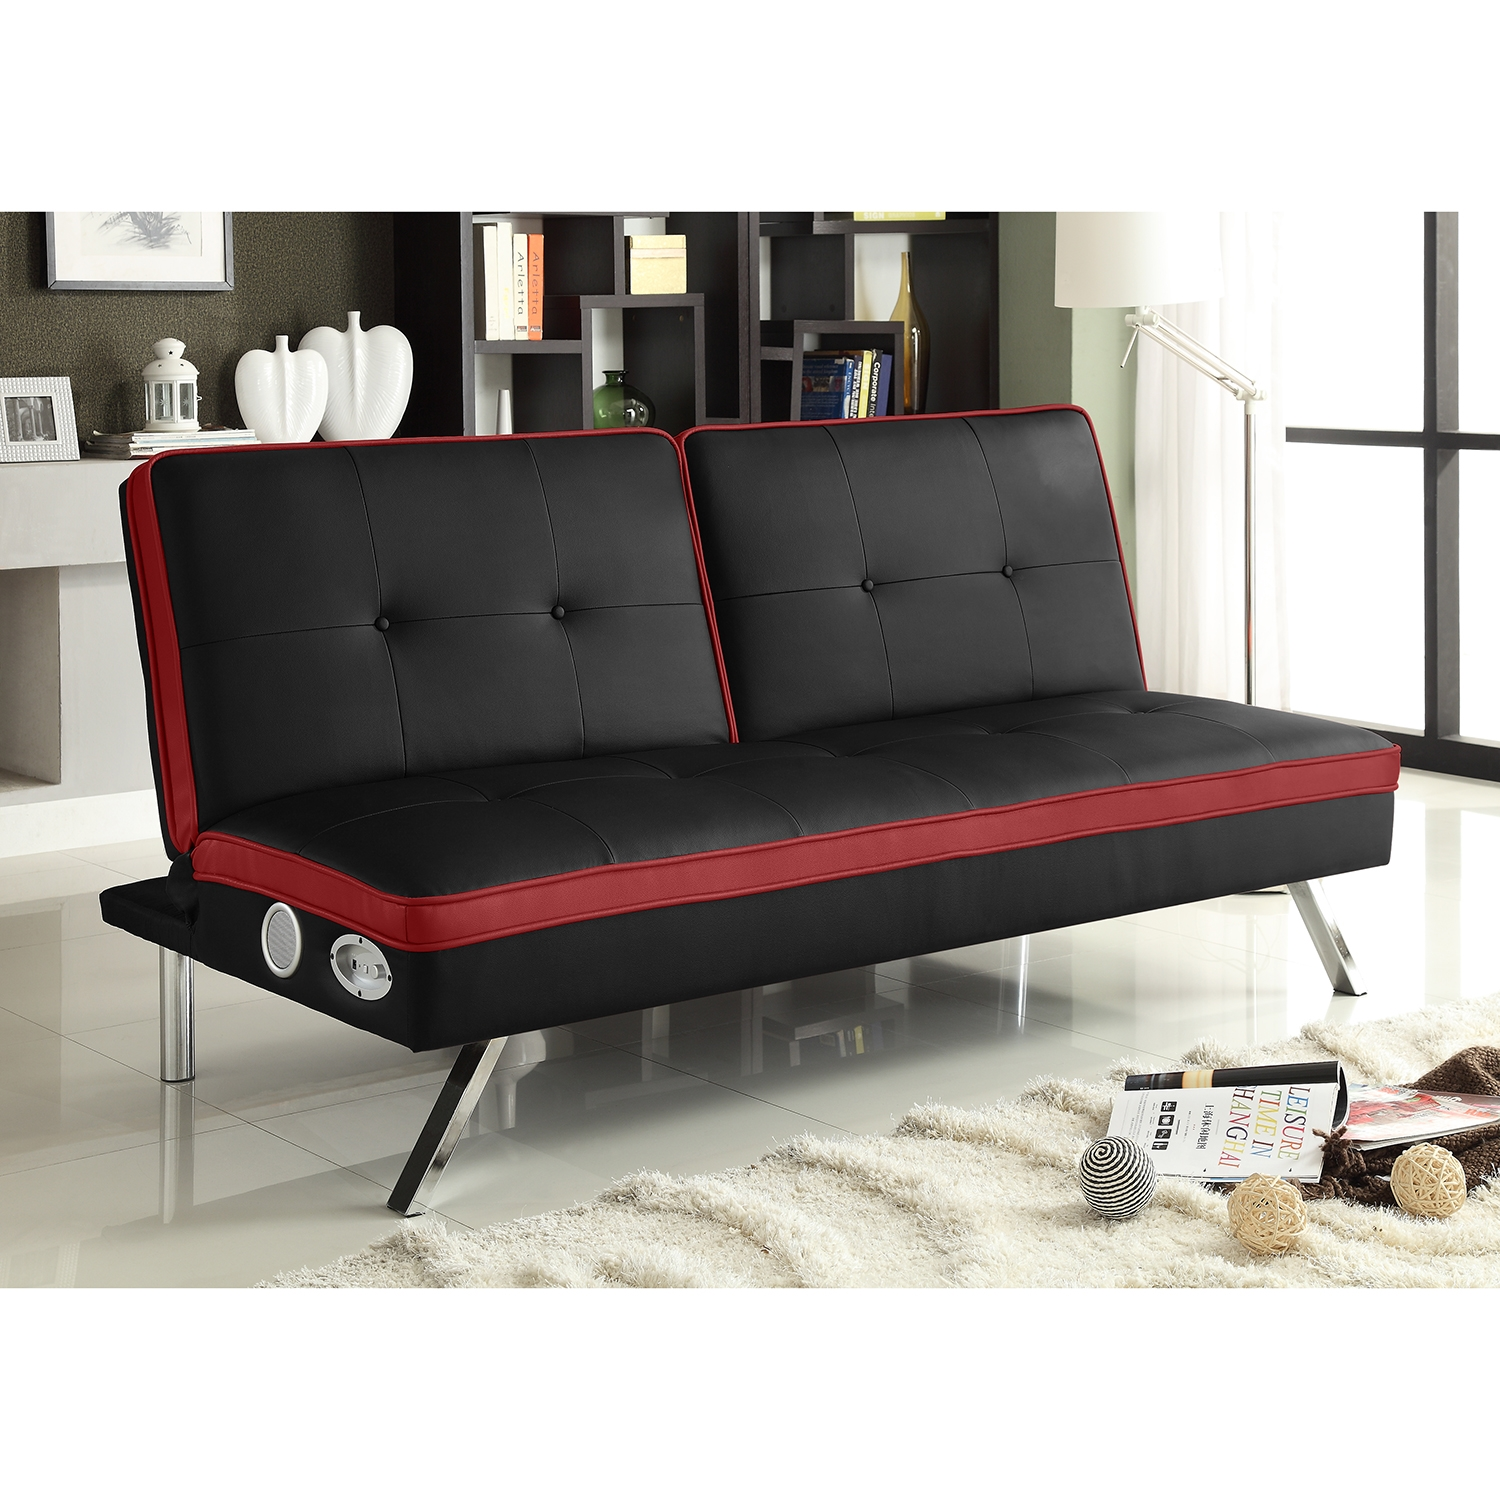 Image of: Cheap Futons Small